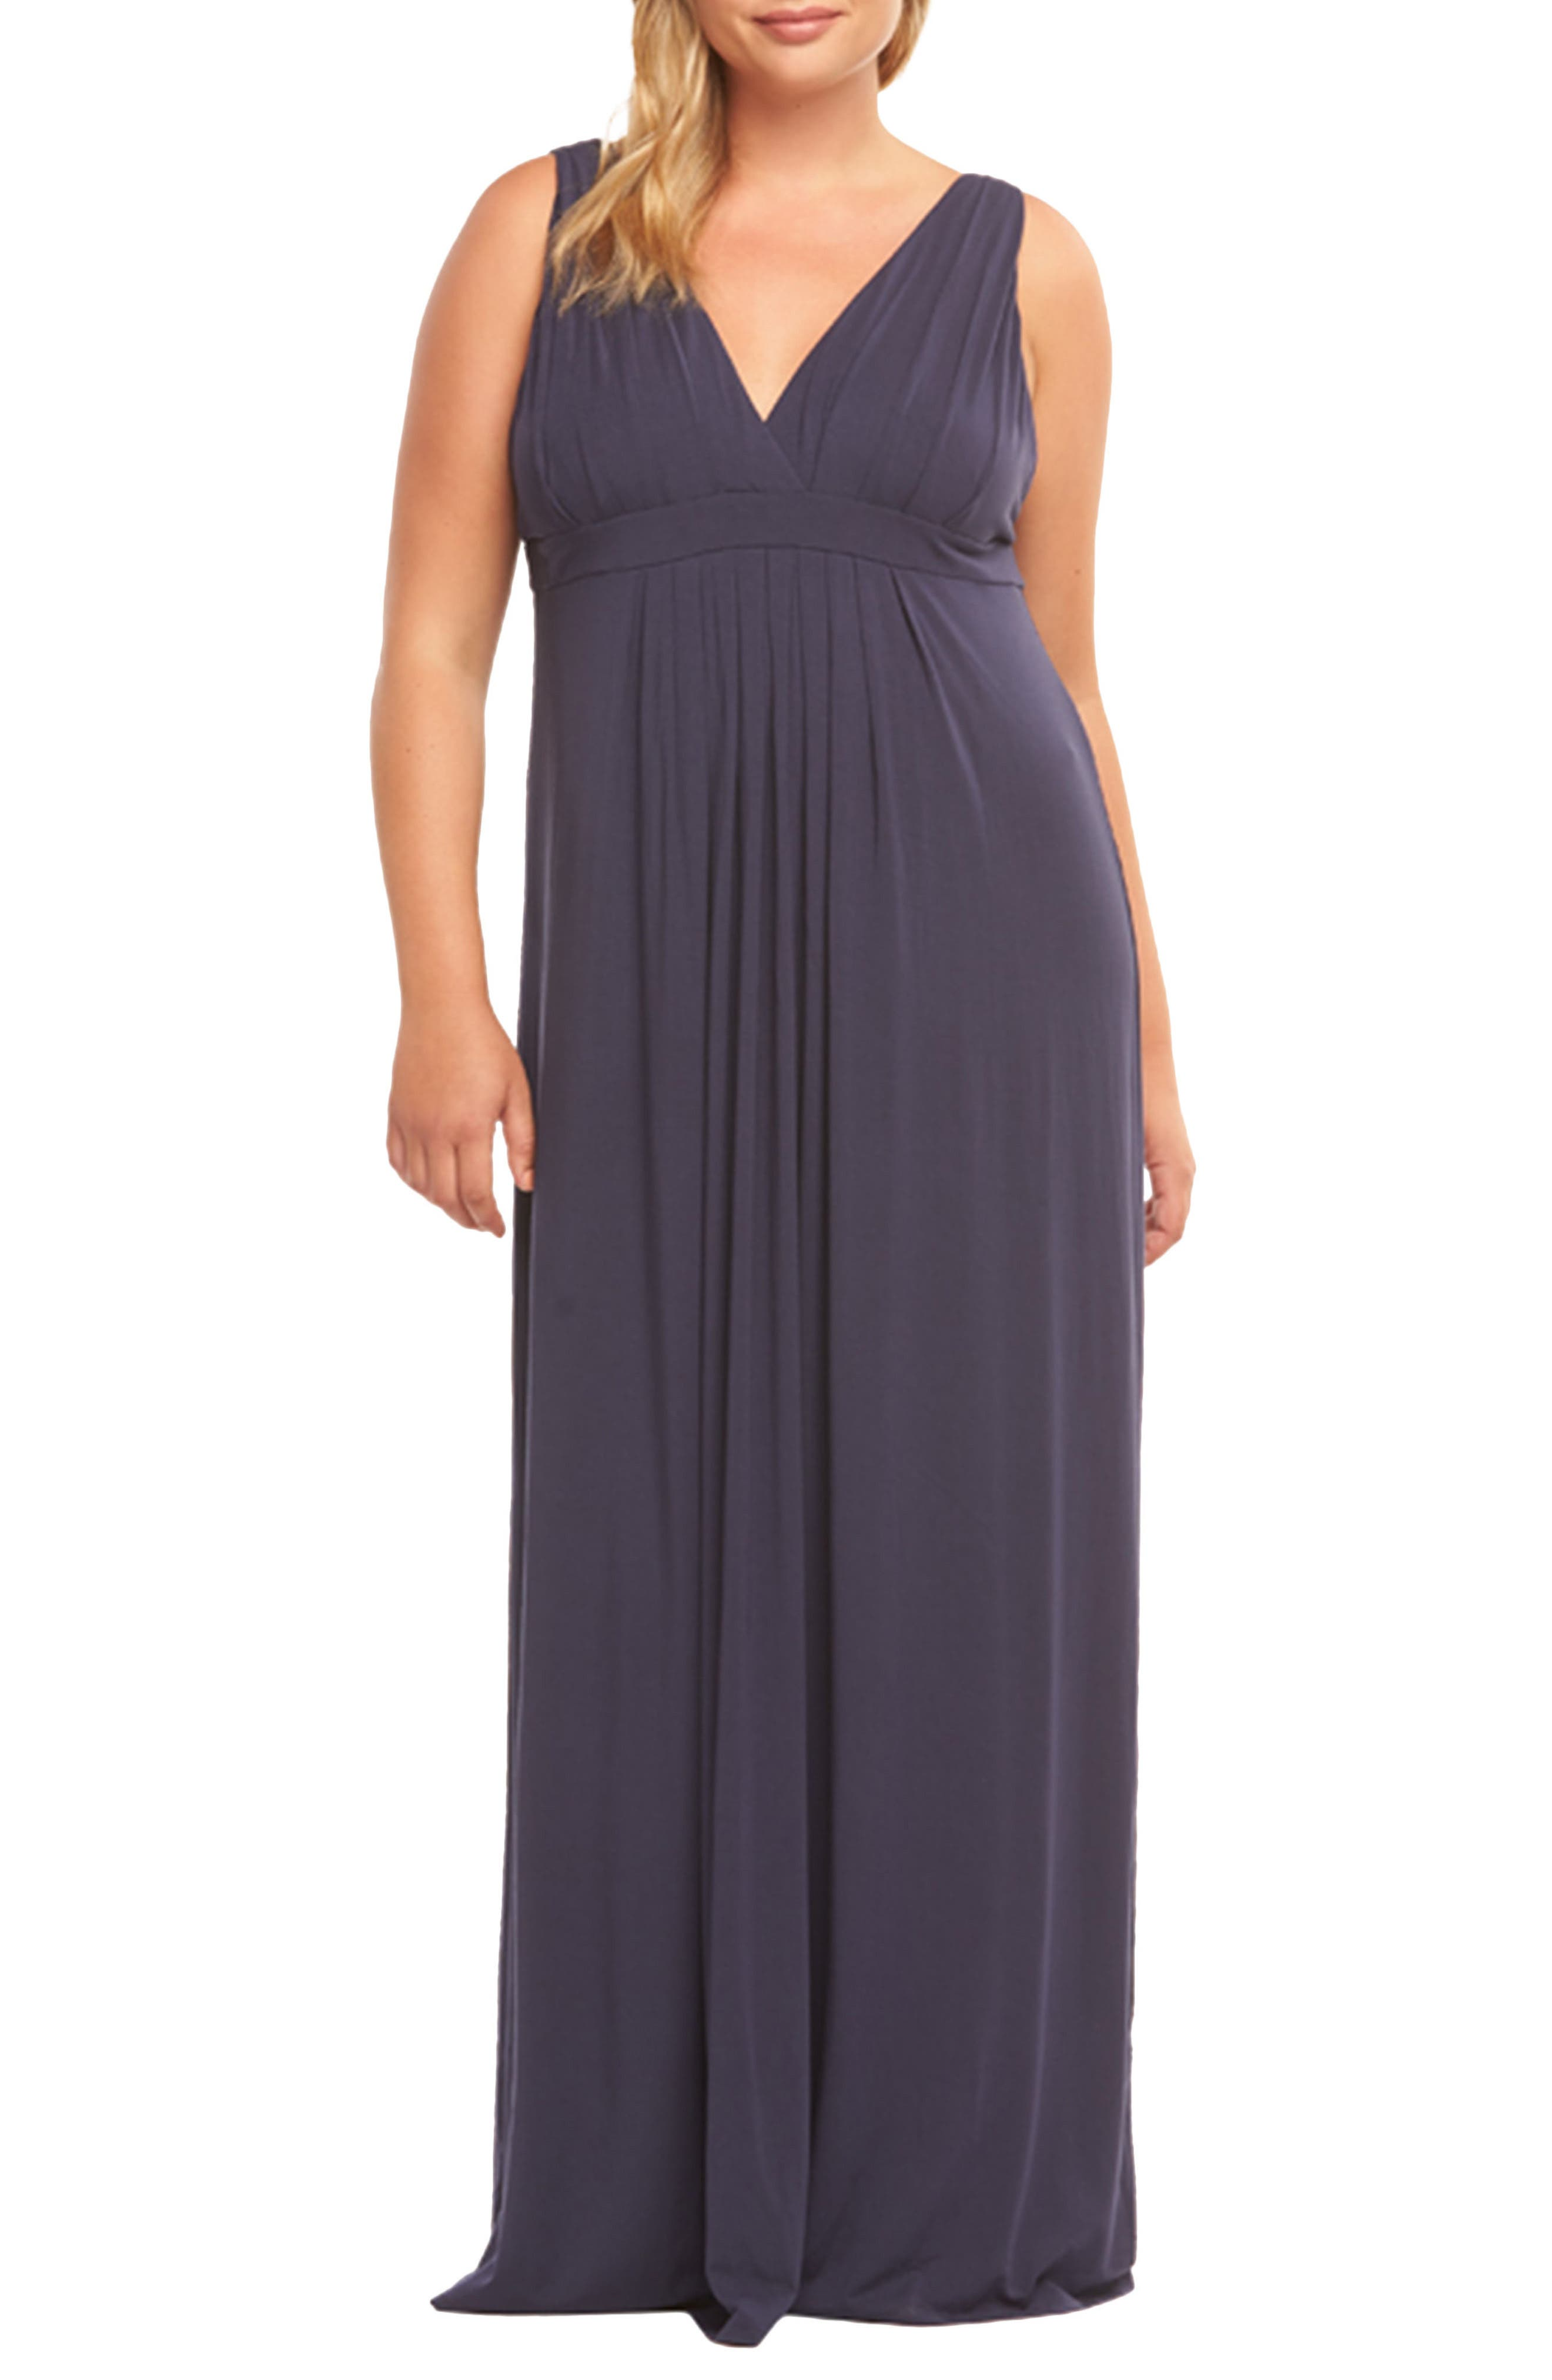 Alternate Image 1 Selected - Tart Chael Lace-Up Back Maxi Dress (Plus Size)